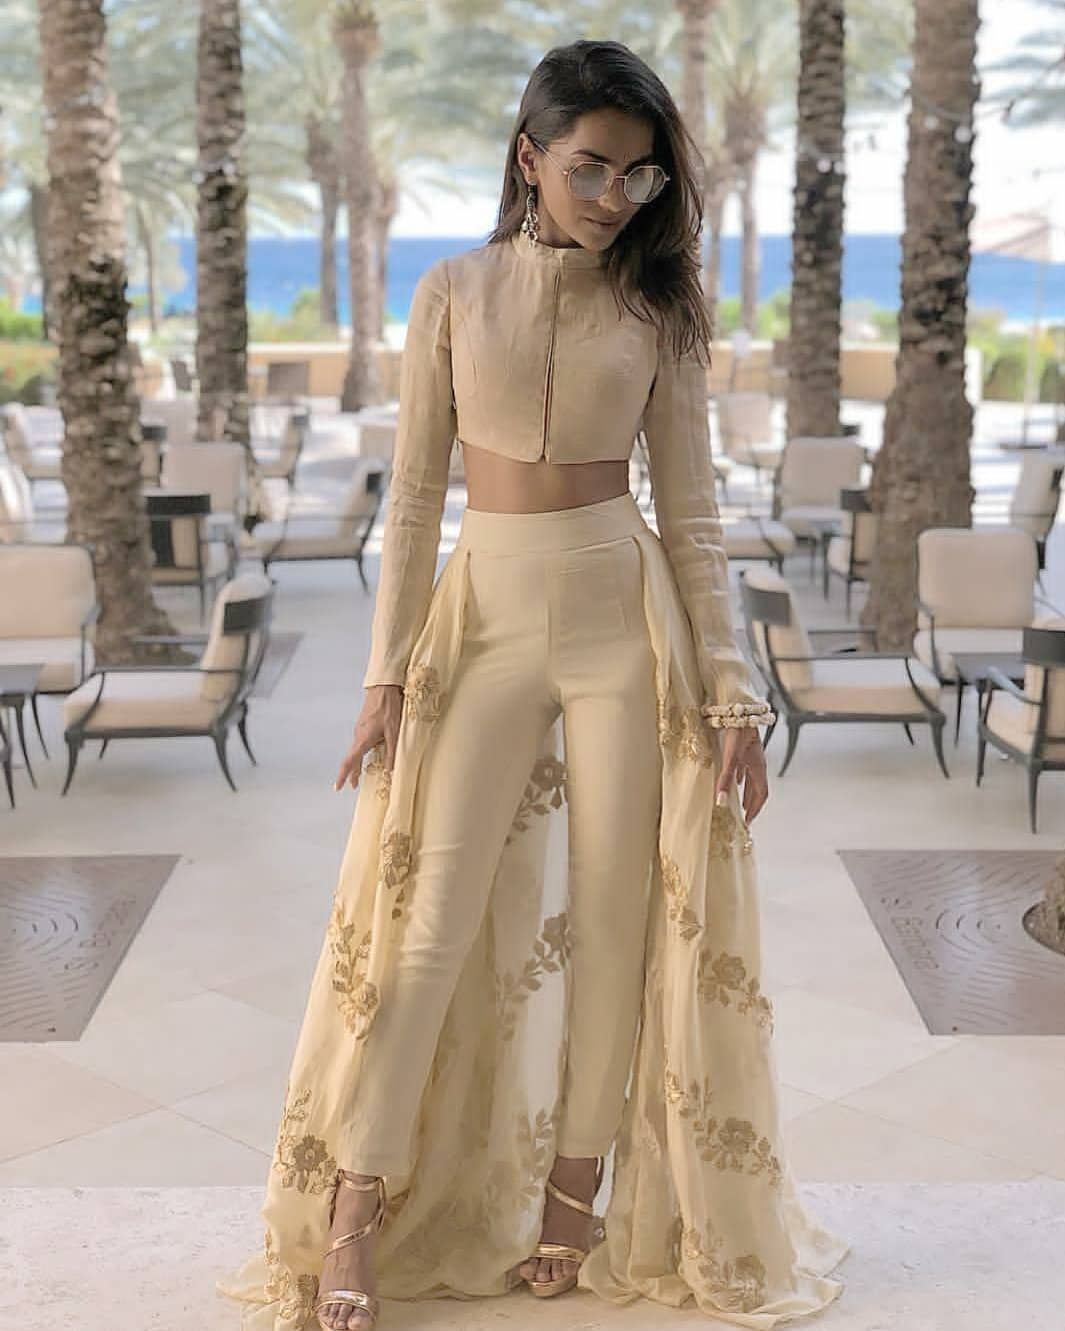 Image may contain 1 person, standing and outdoor #indiandesignerwear